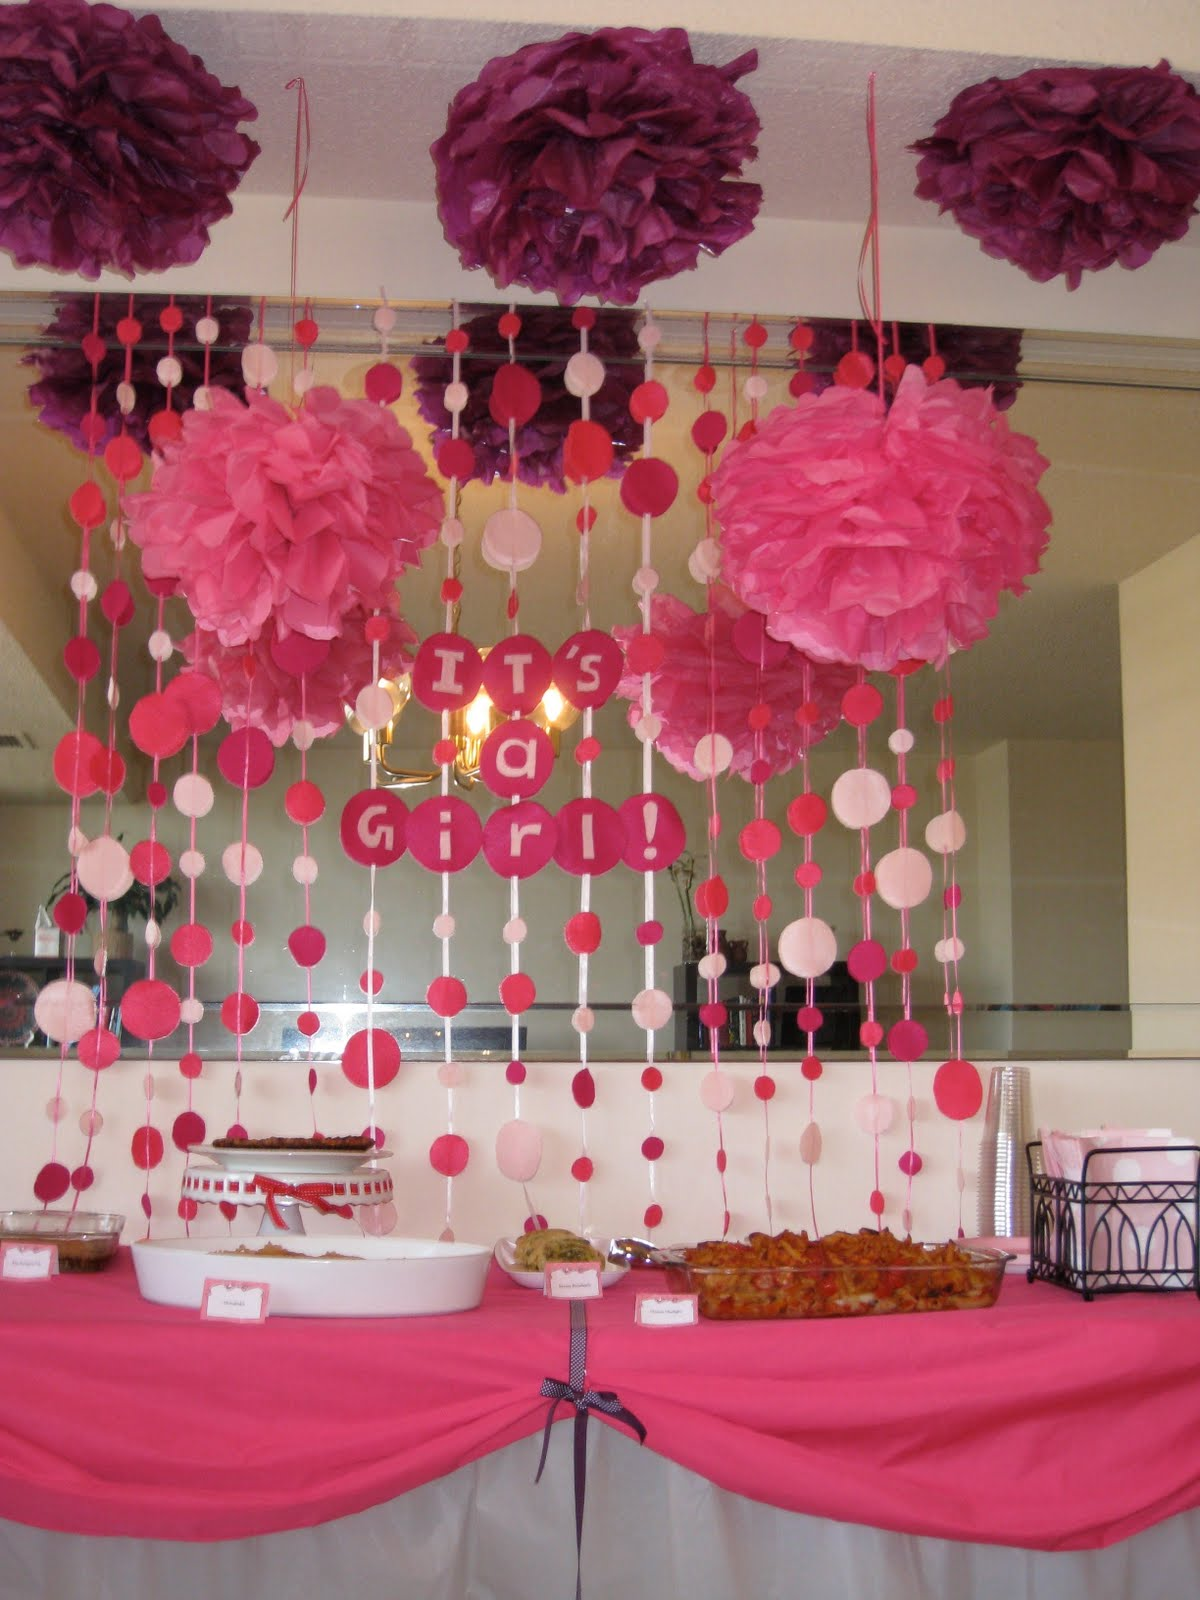 Baby shower food ideas baby shower ideas for a girl for Baby shower centerpiece decoration